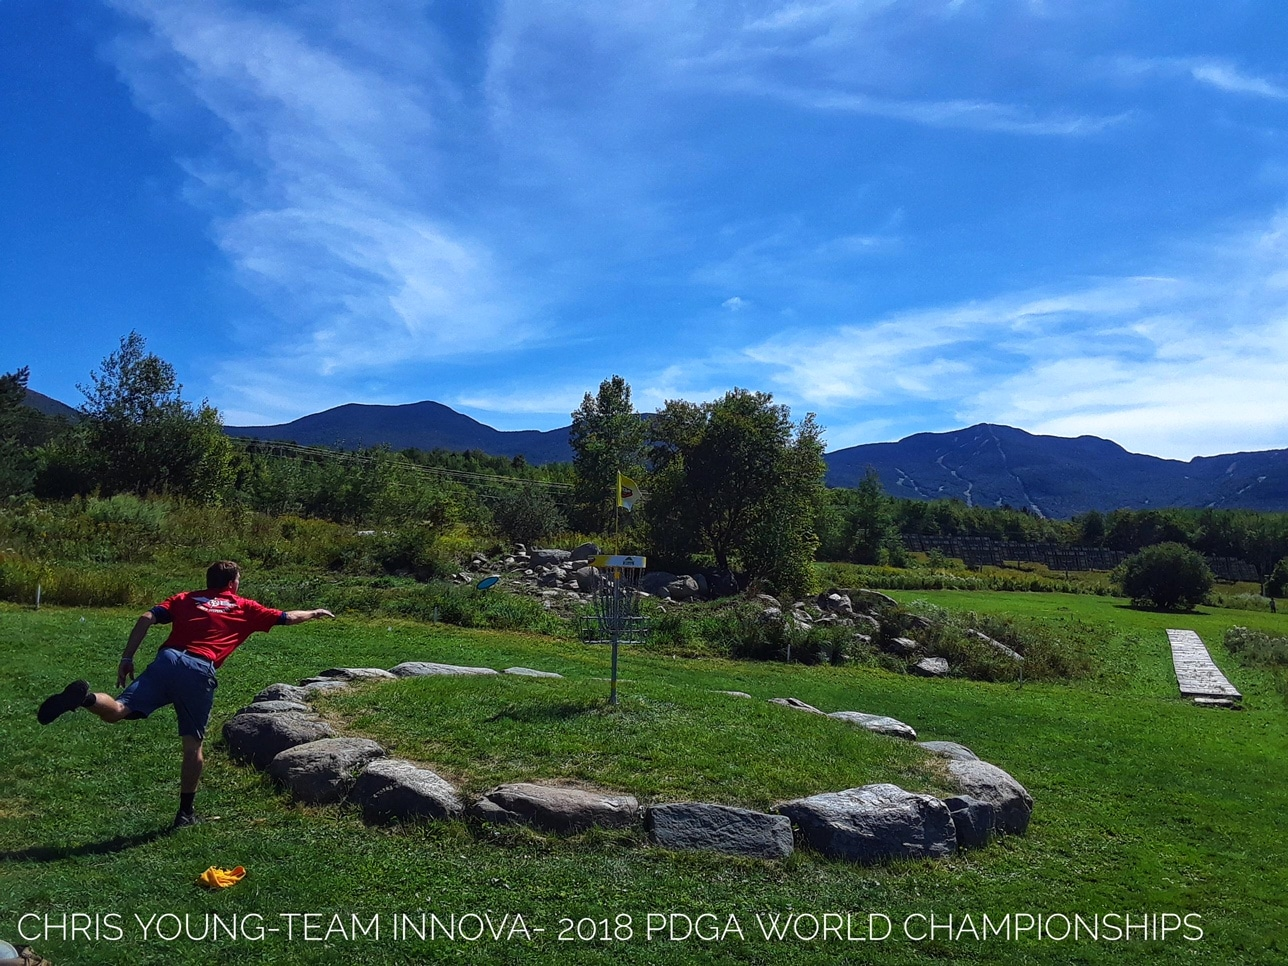 Owner Chris young putting at Worlds